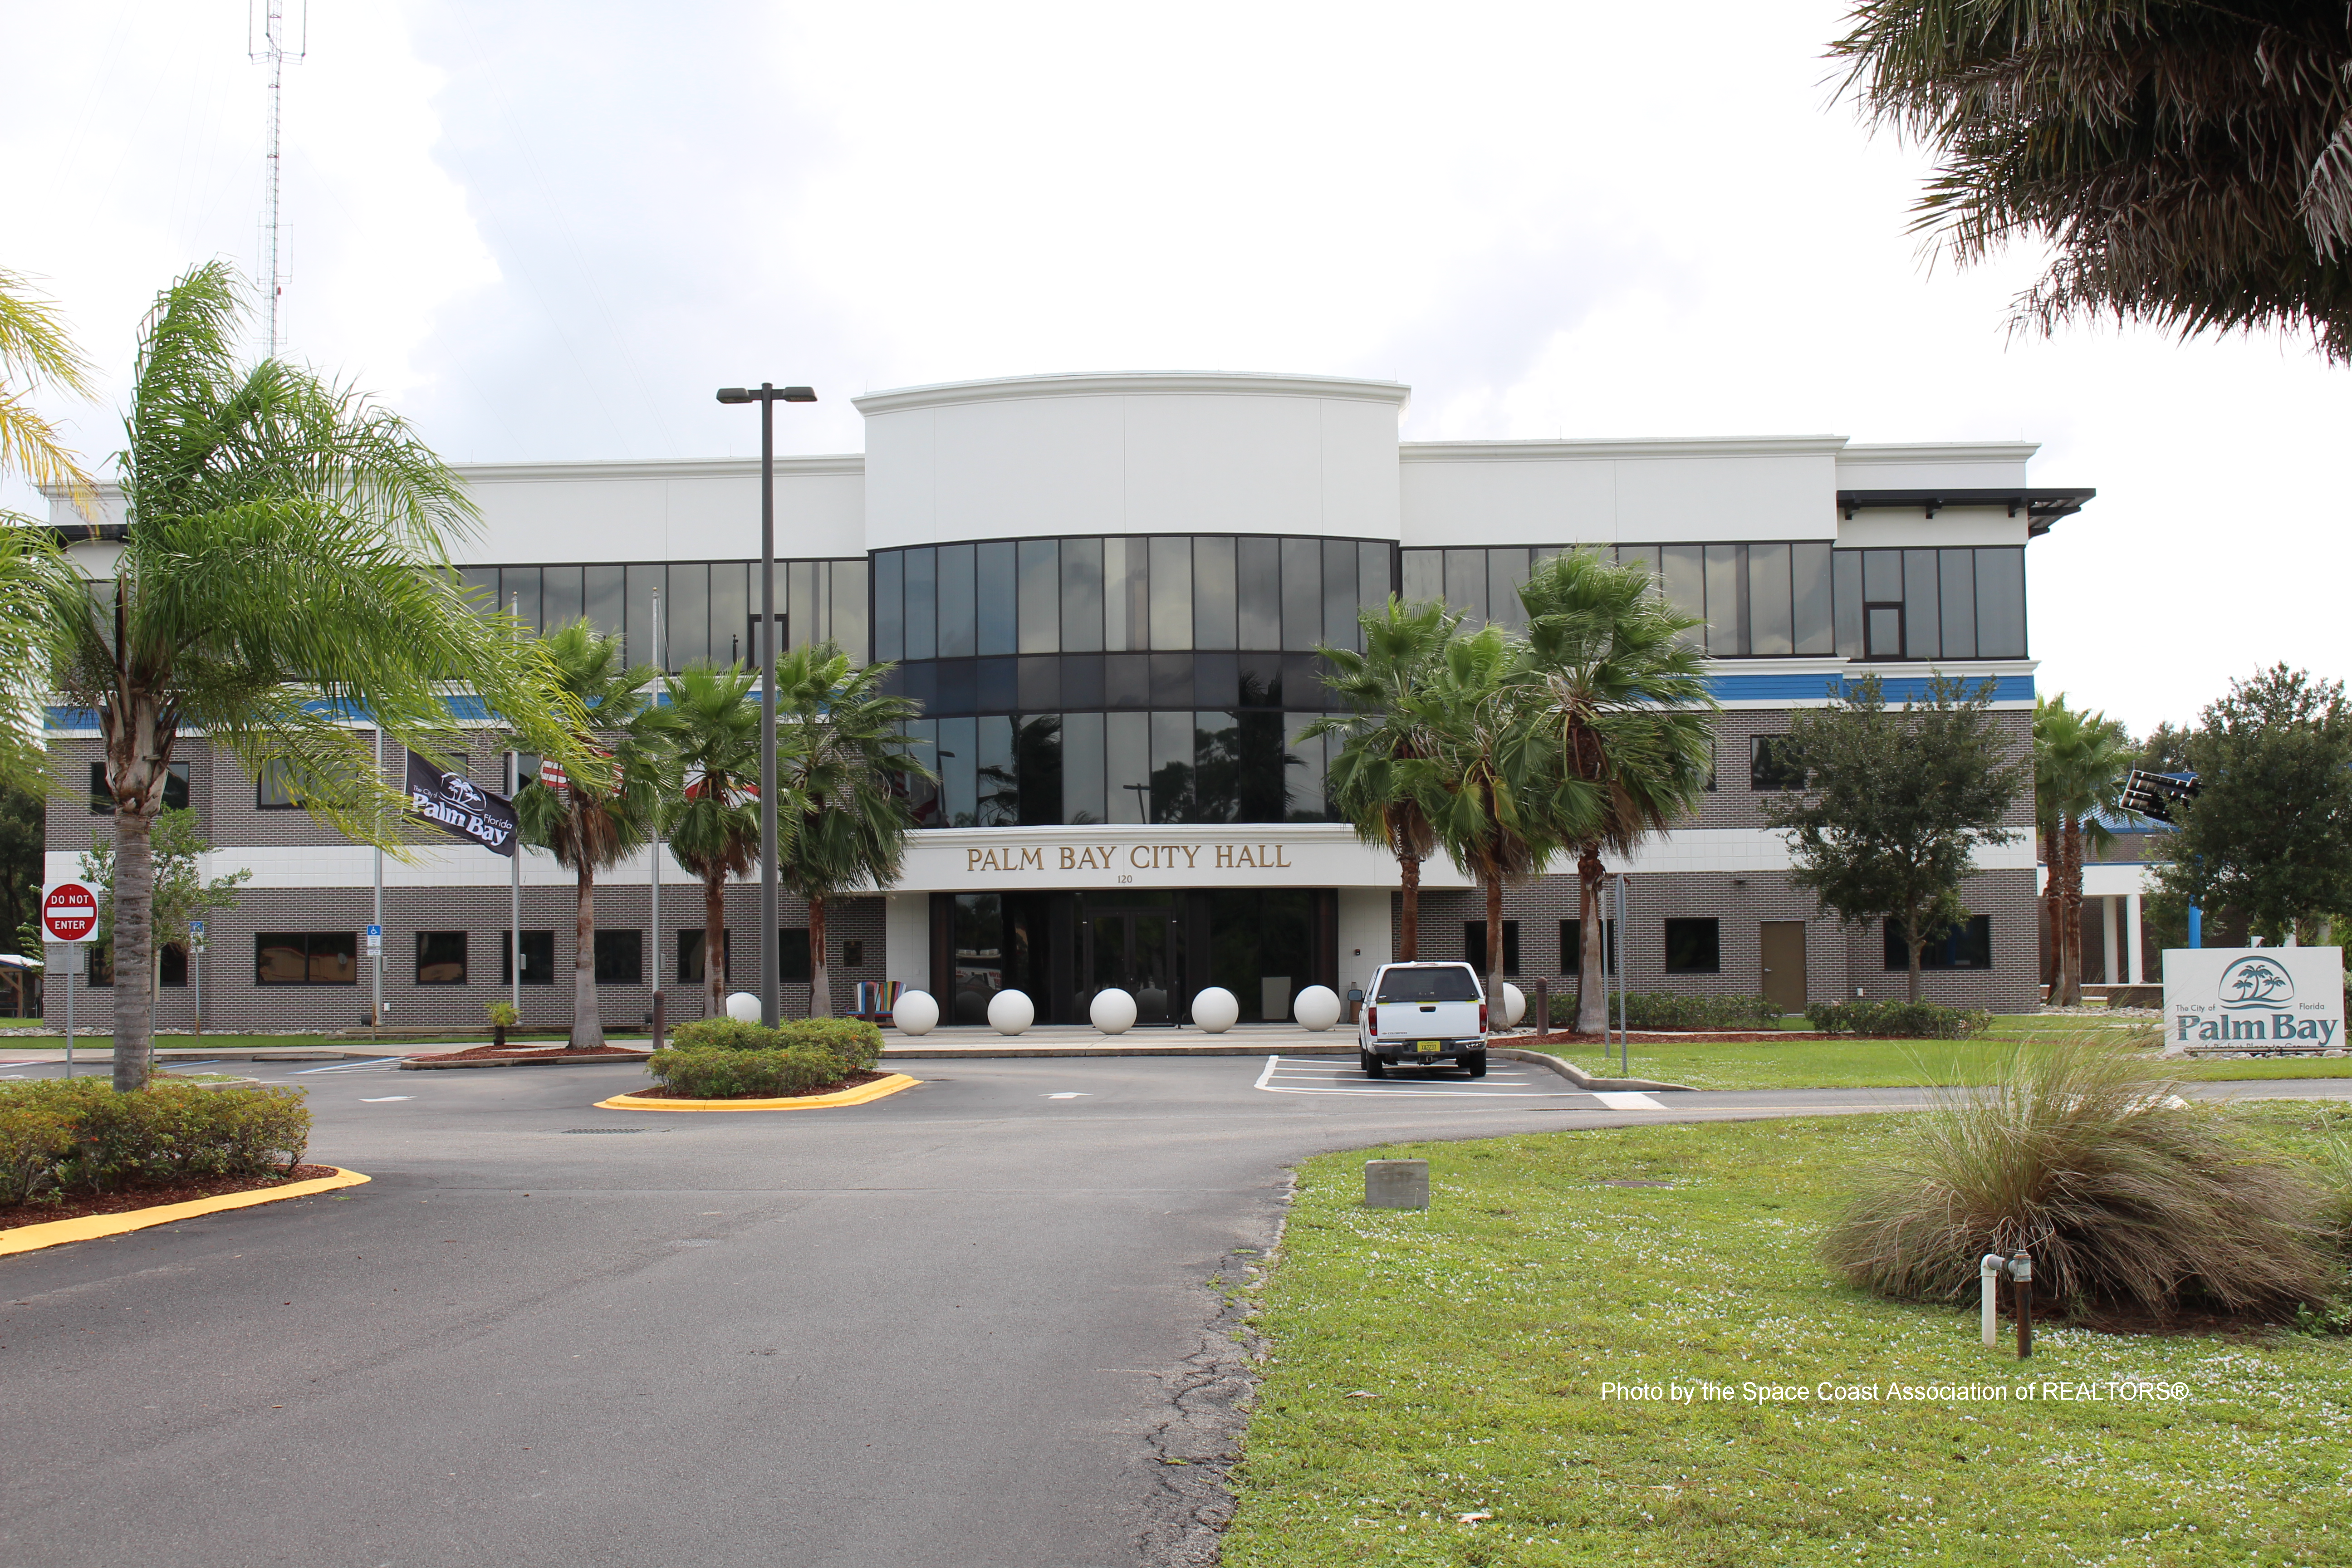 Palm Bay City Council building in Palm Bay, Florida